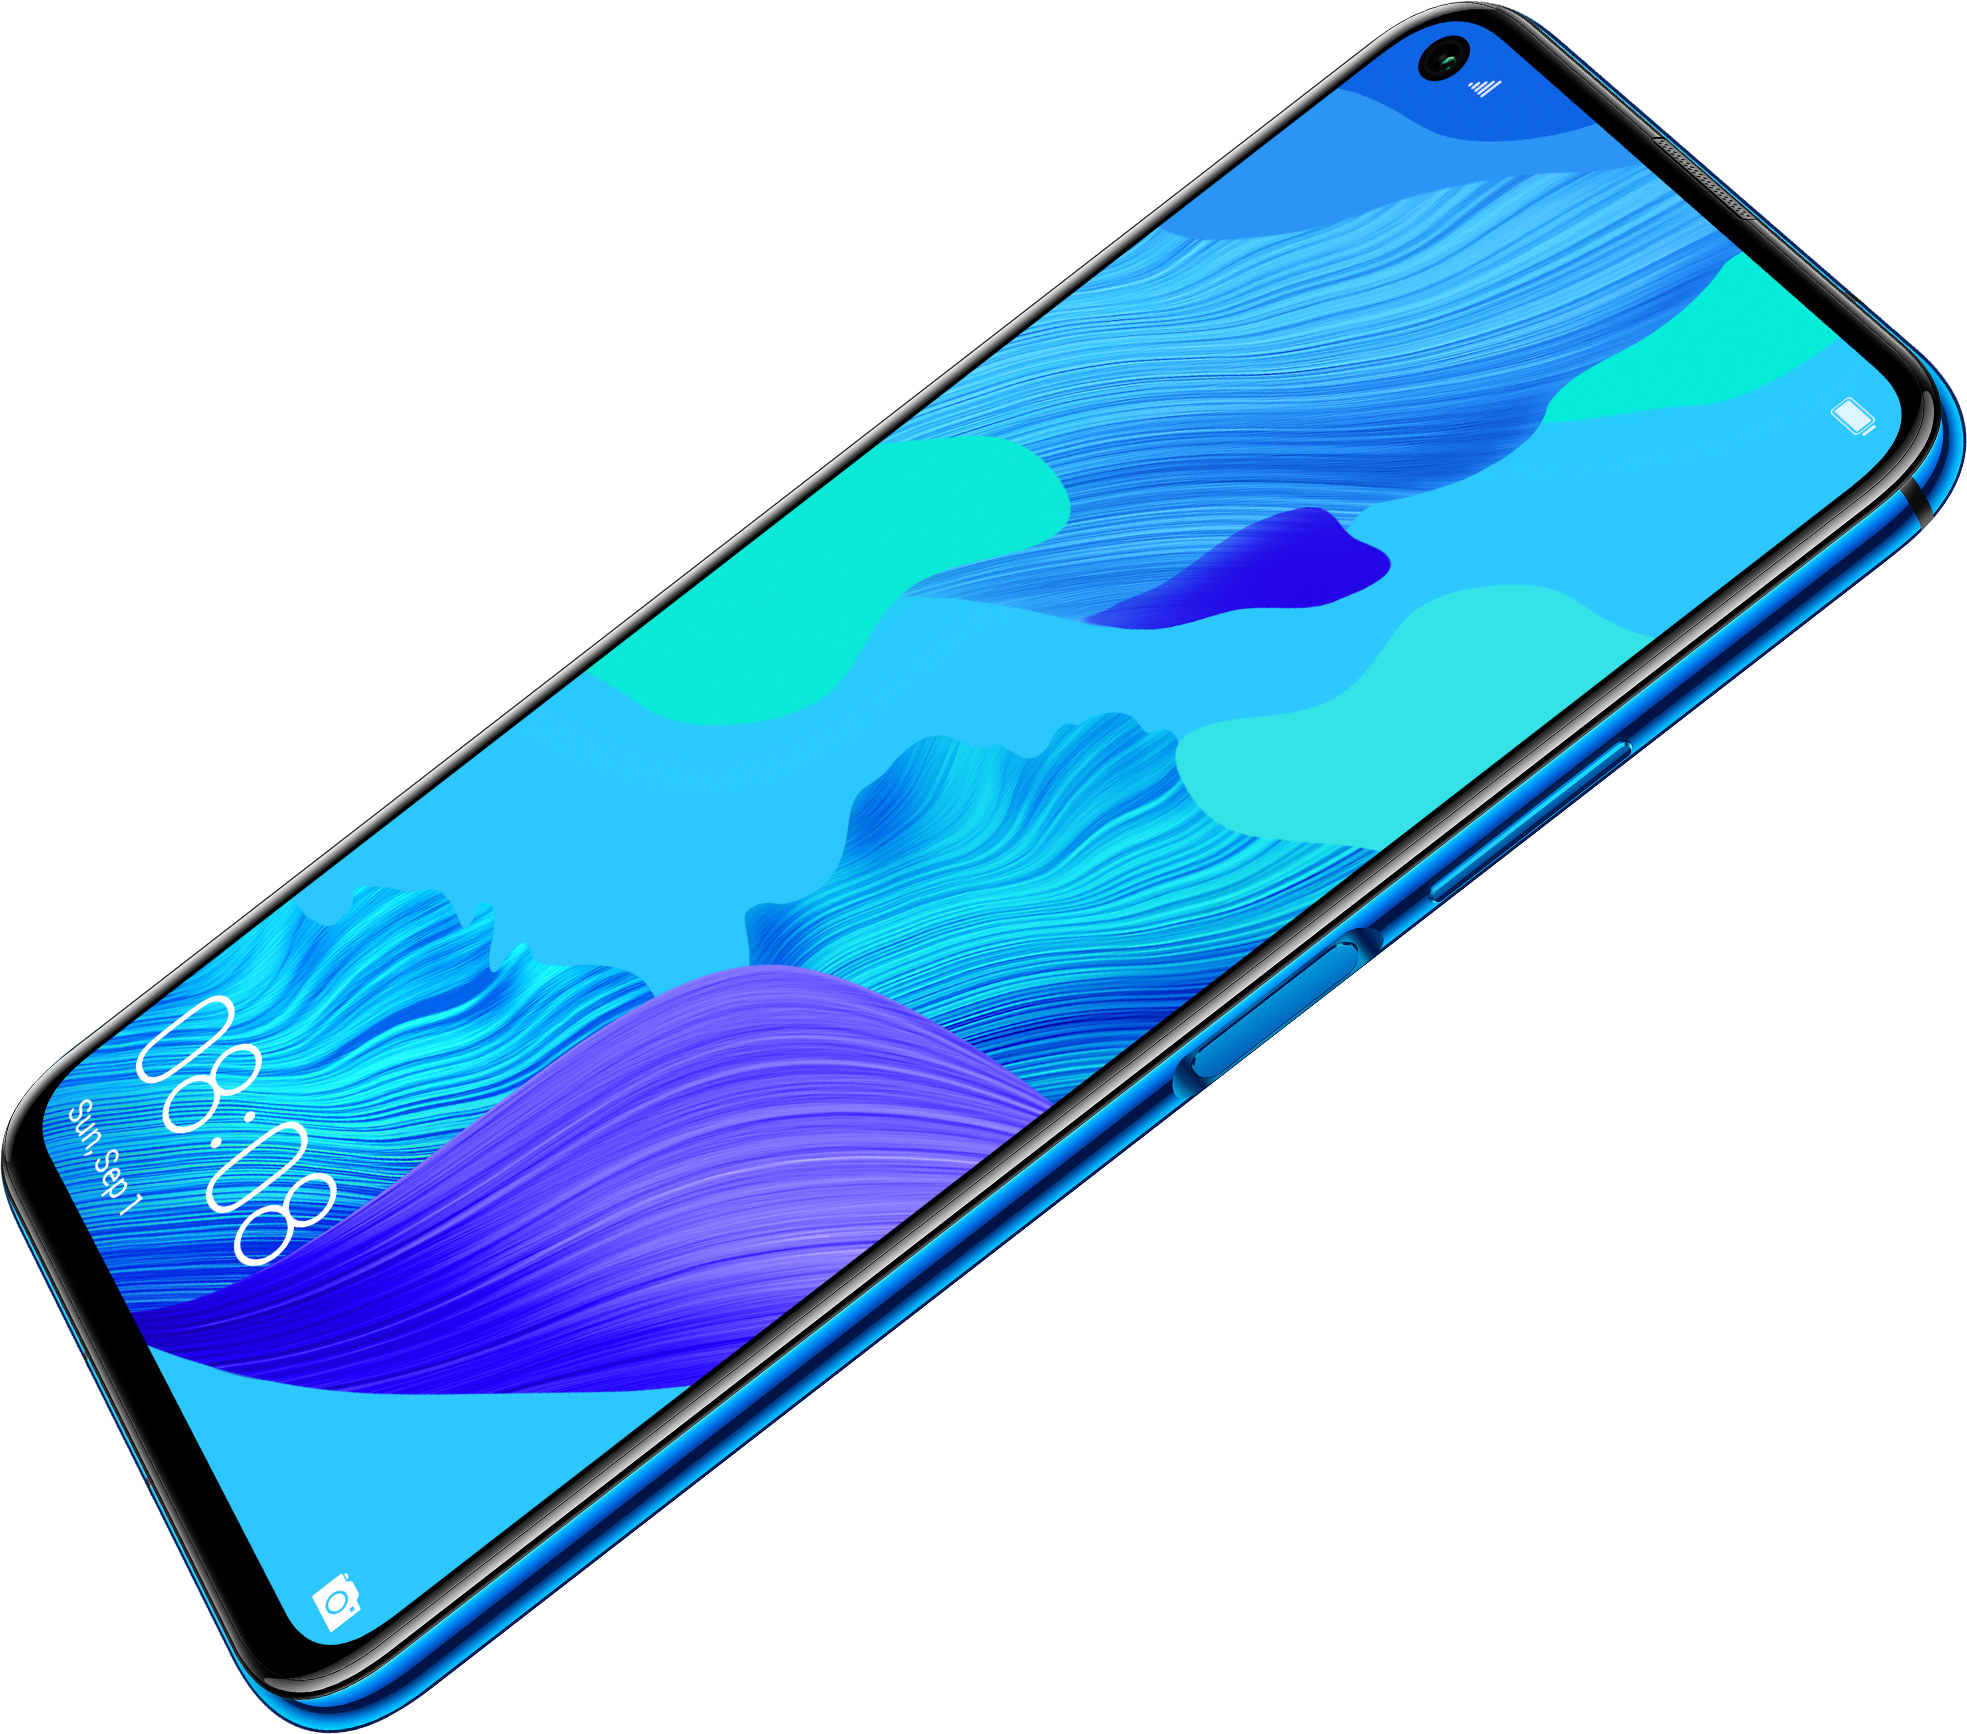 HUAWEI nova 5T side mounted fingerprint